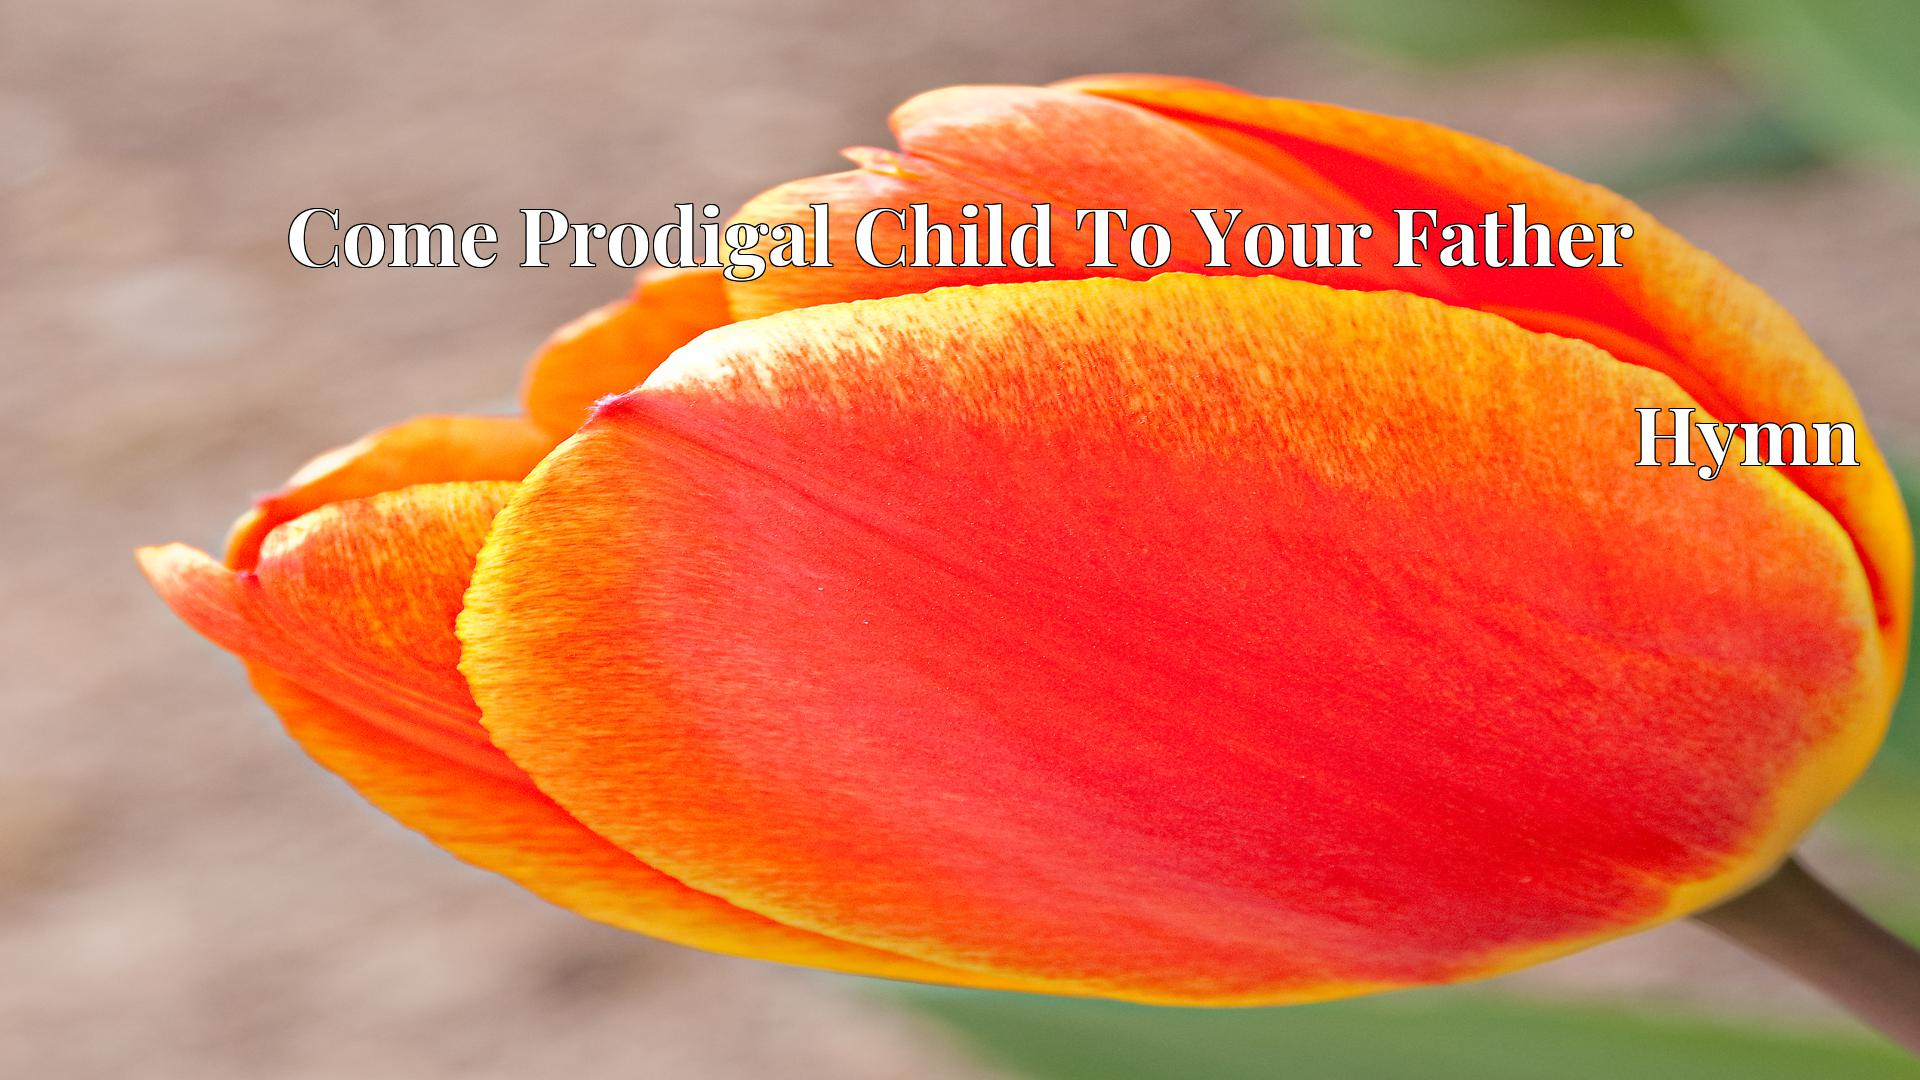 Come Prodigal Child To Your Father - Hymn